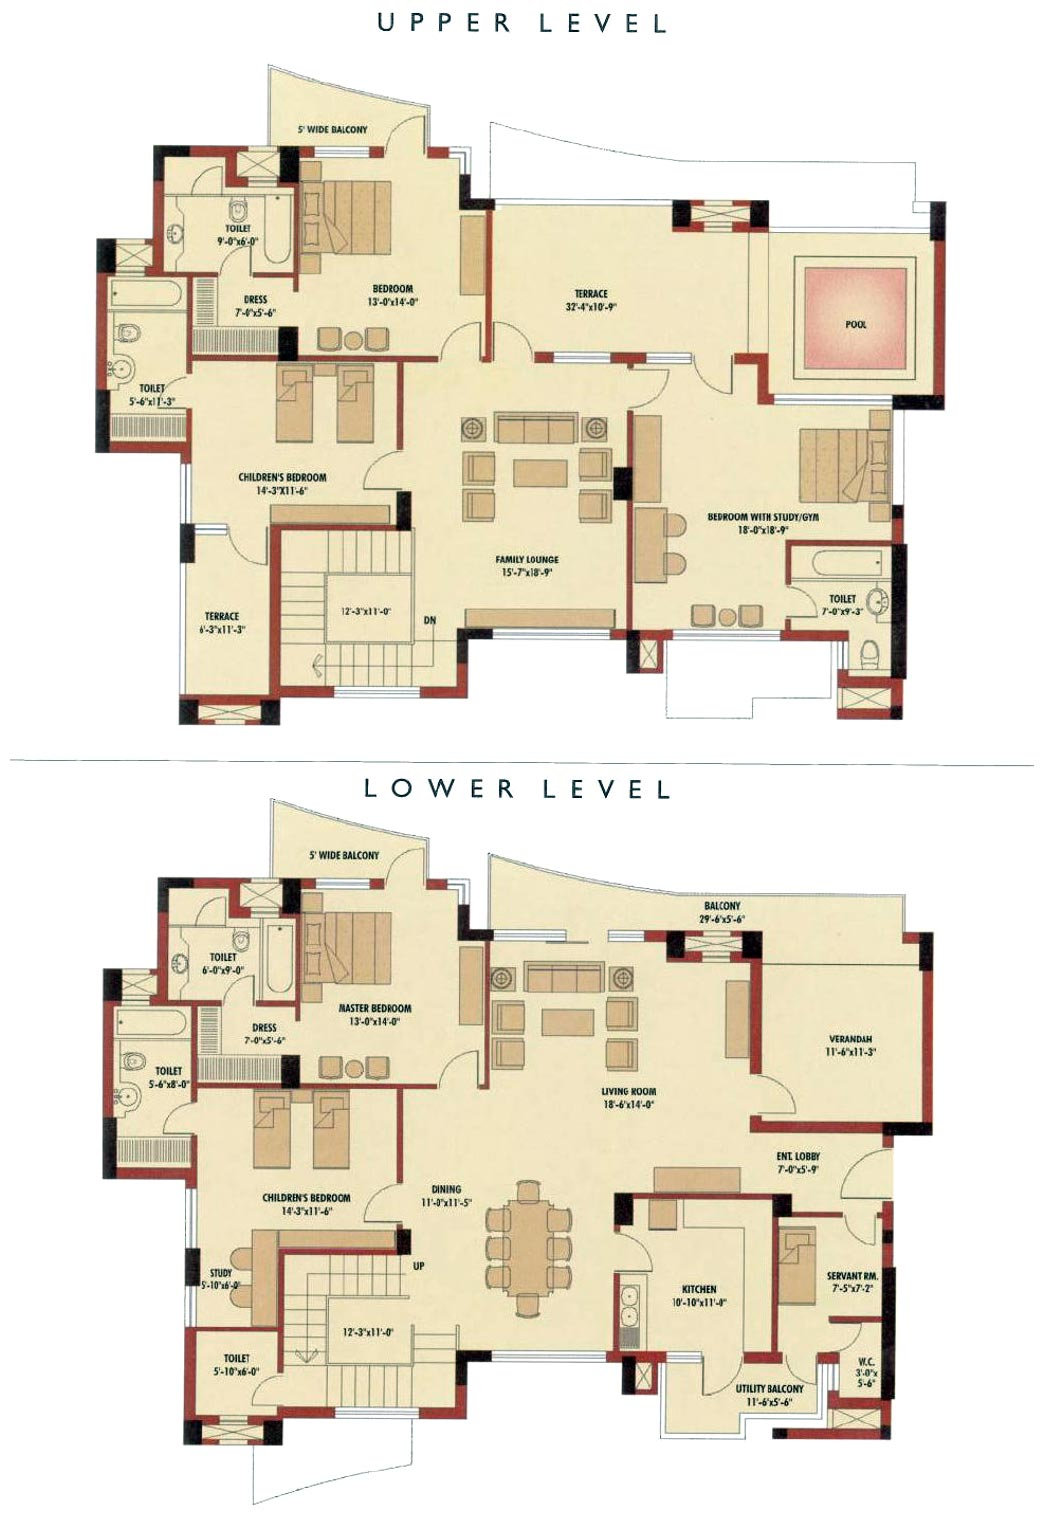 4 bedroom duplex floor garage plan floor plans for Building plans for duplex homes